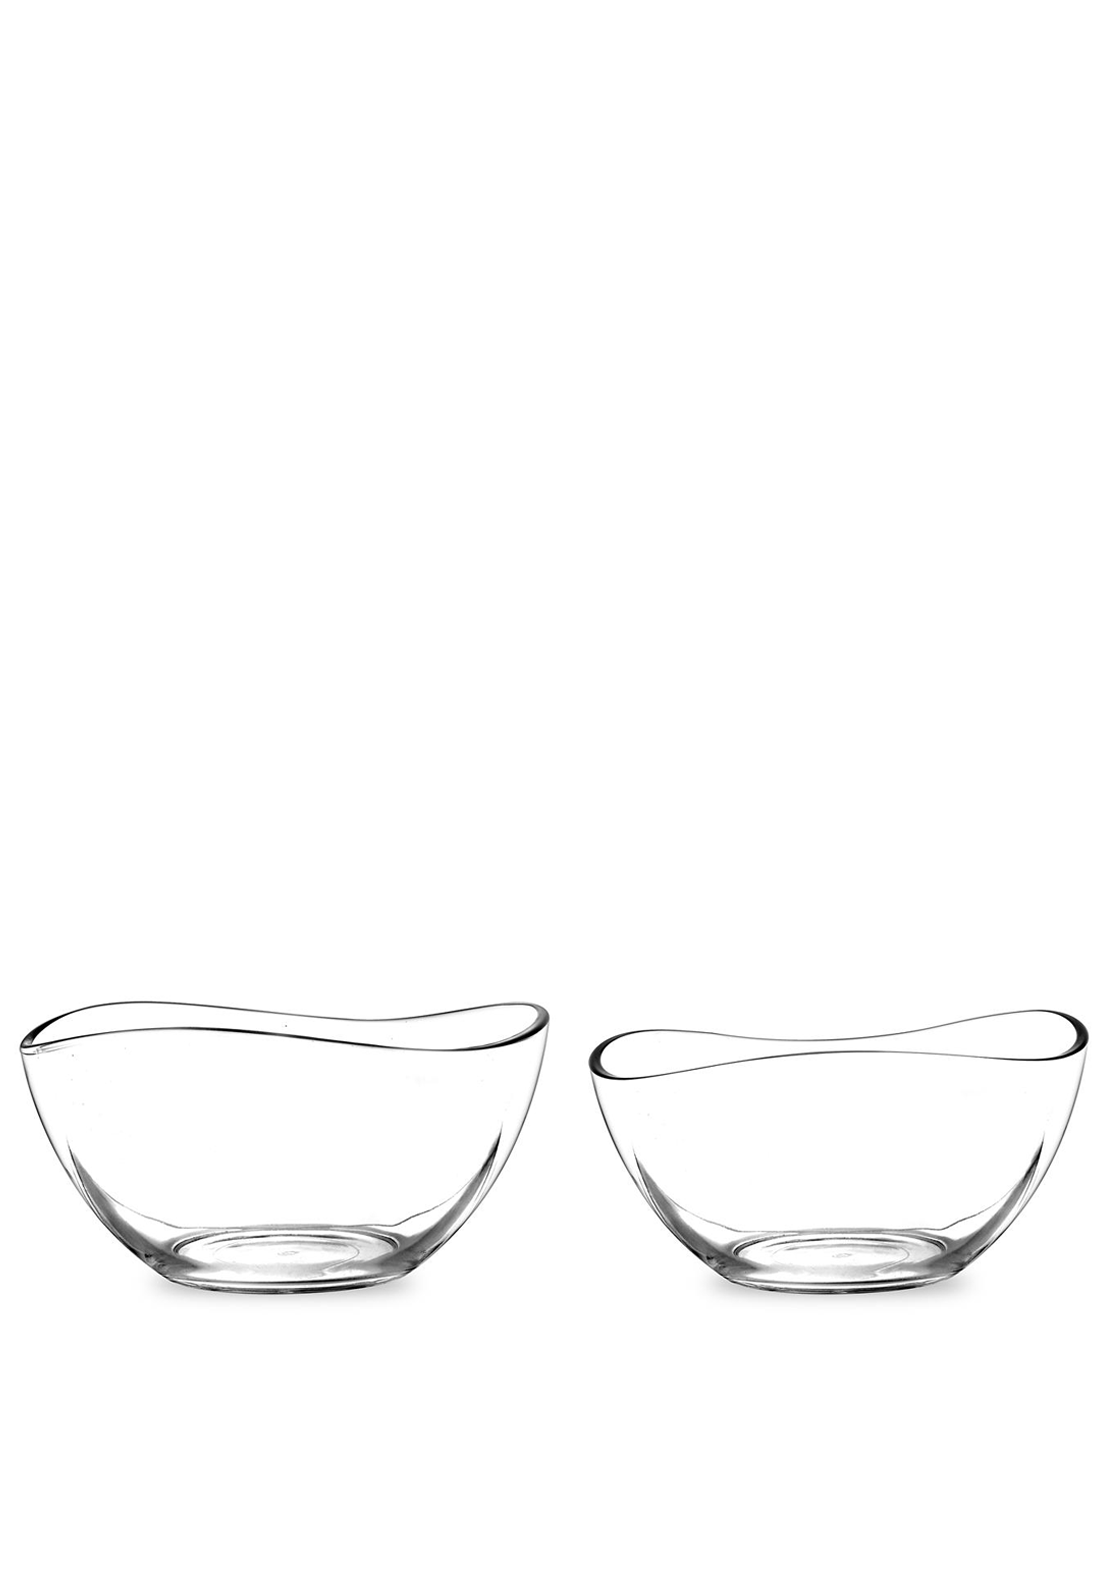 Portmeirion Set of Two Large Glass Bowls, Clear Glass